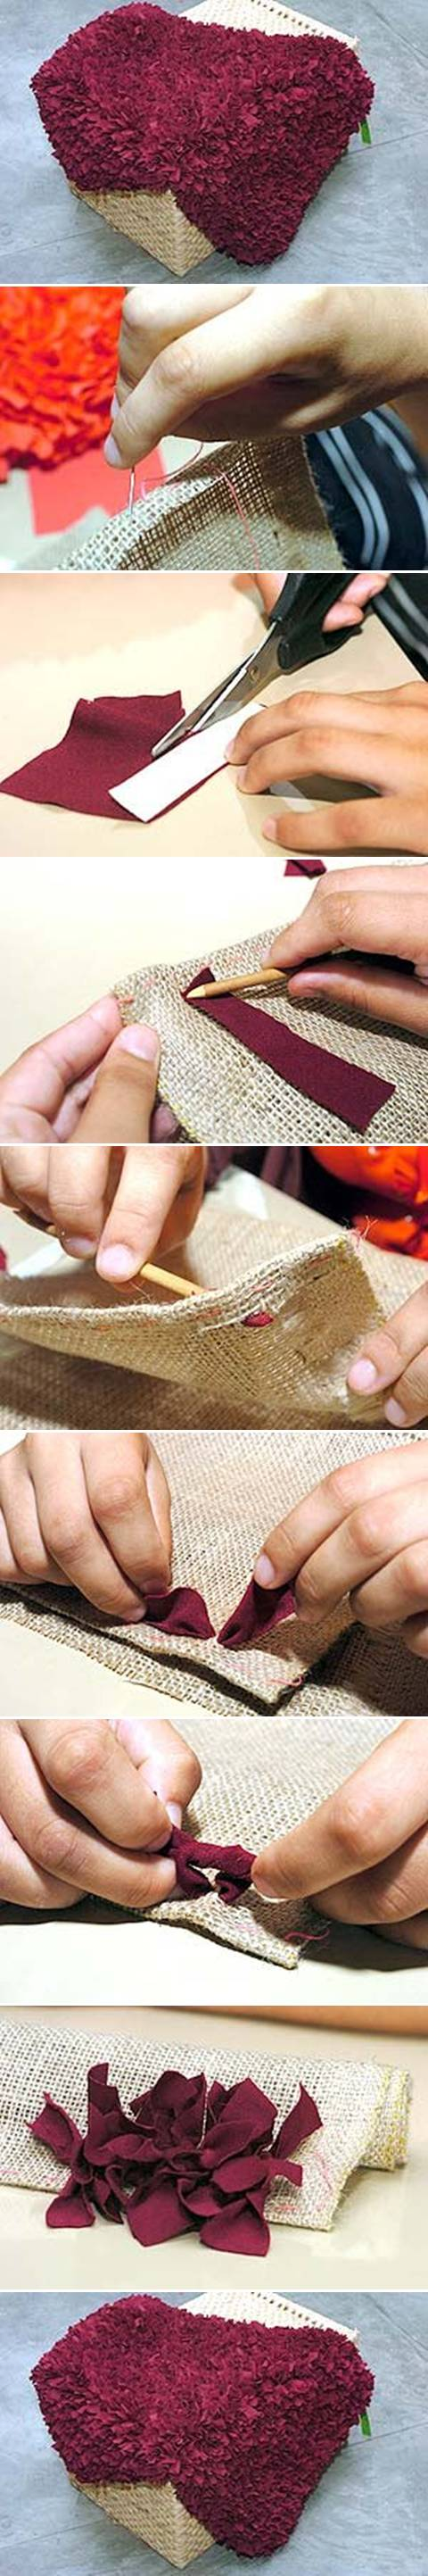 How to make Scrap Fabric Rug step by step DIY tutorial instructions